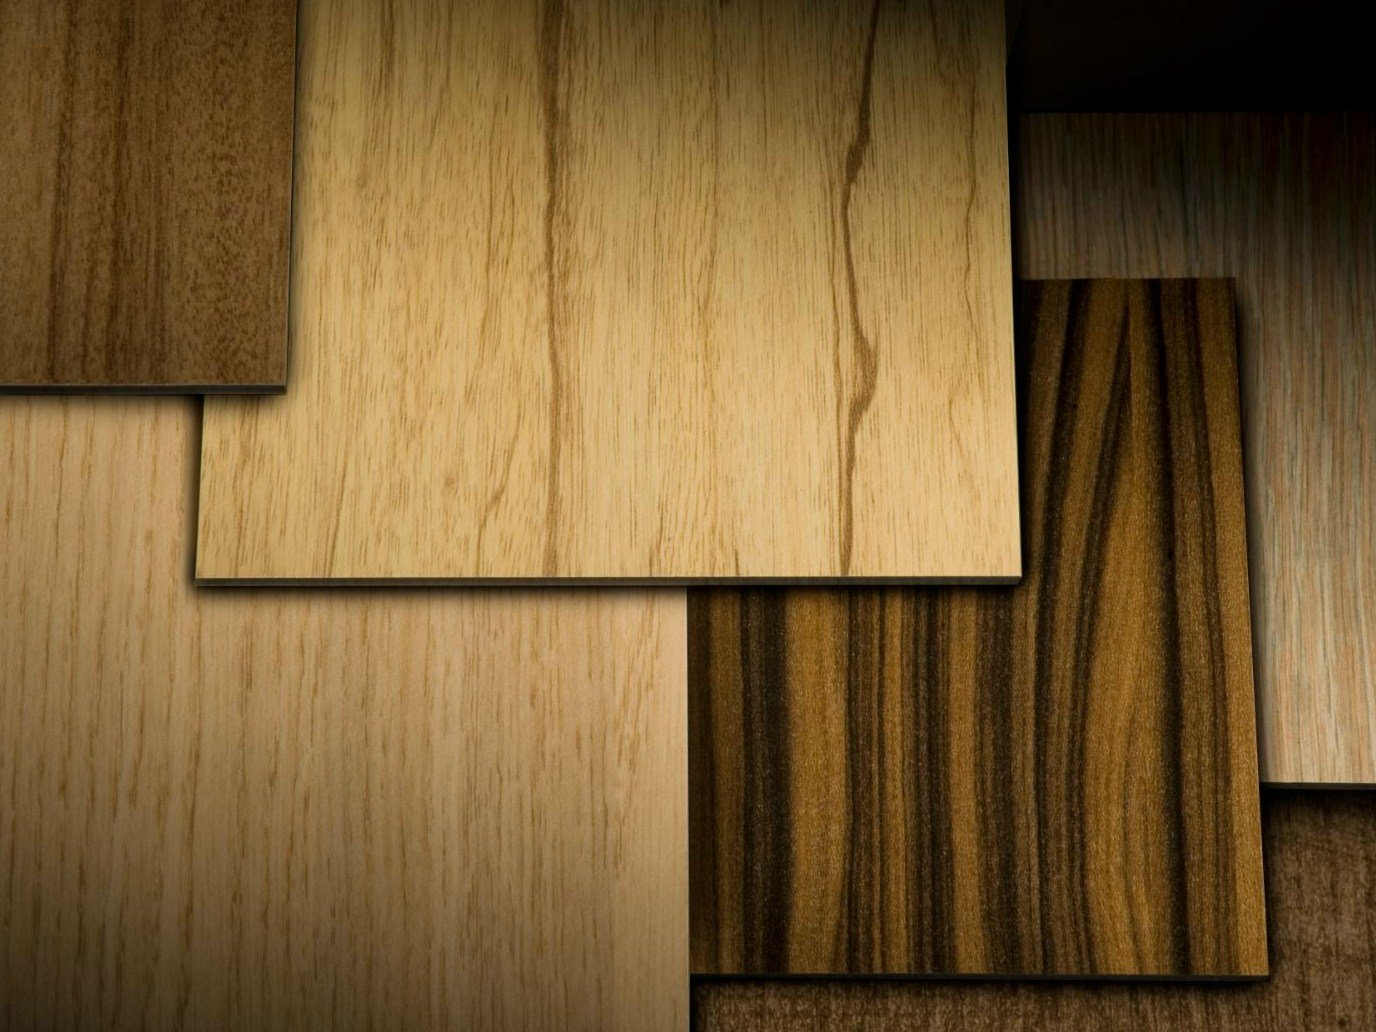 Hpl Wall Panel With Wood Effect Trespa 174 Meteon 174 Wood